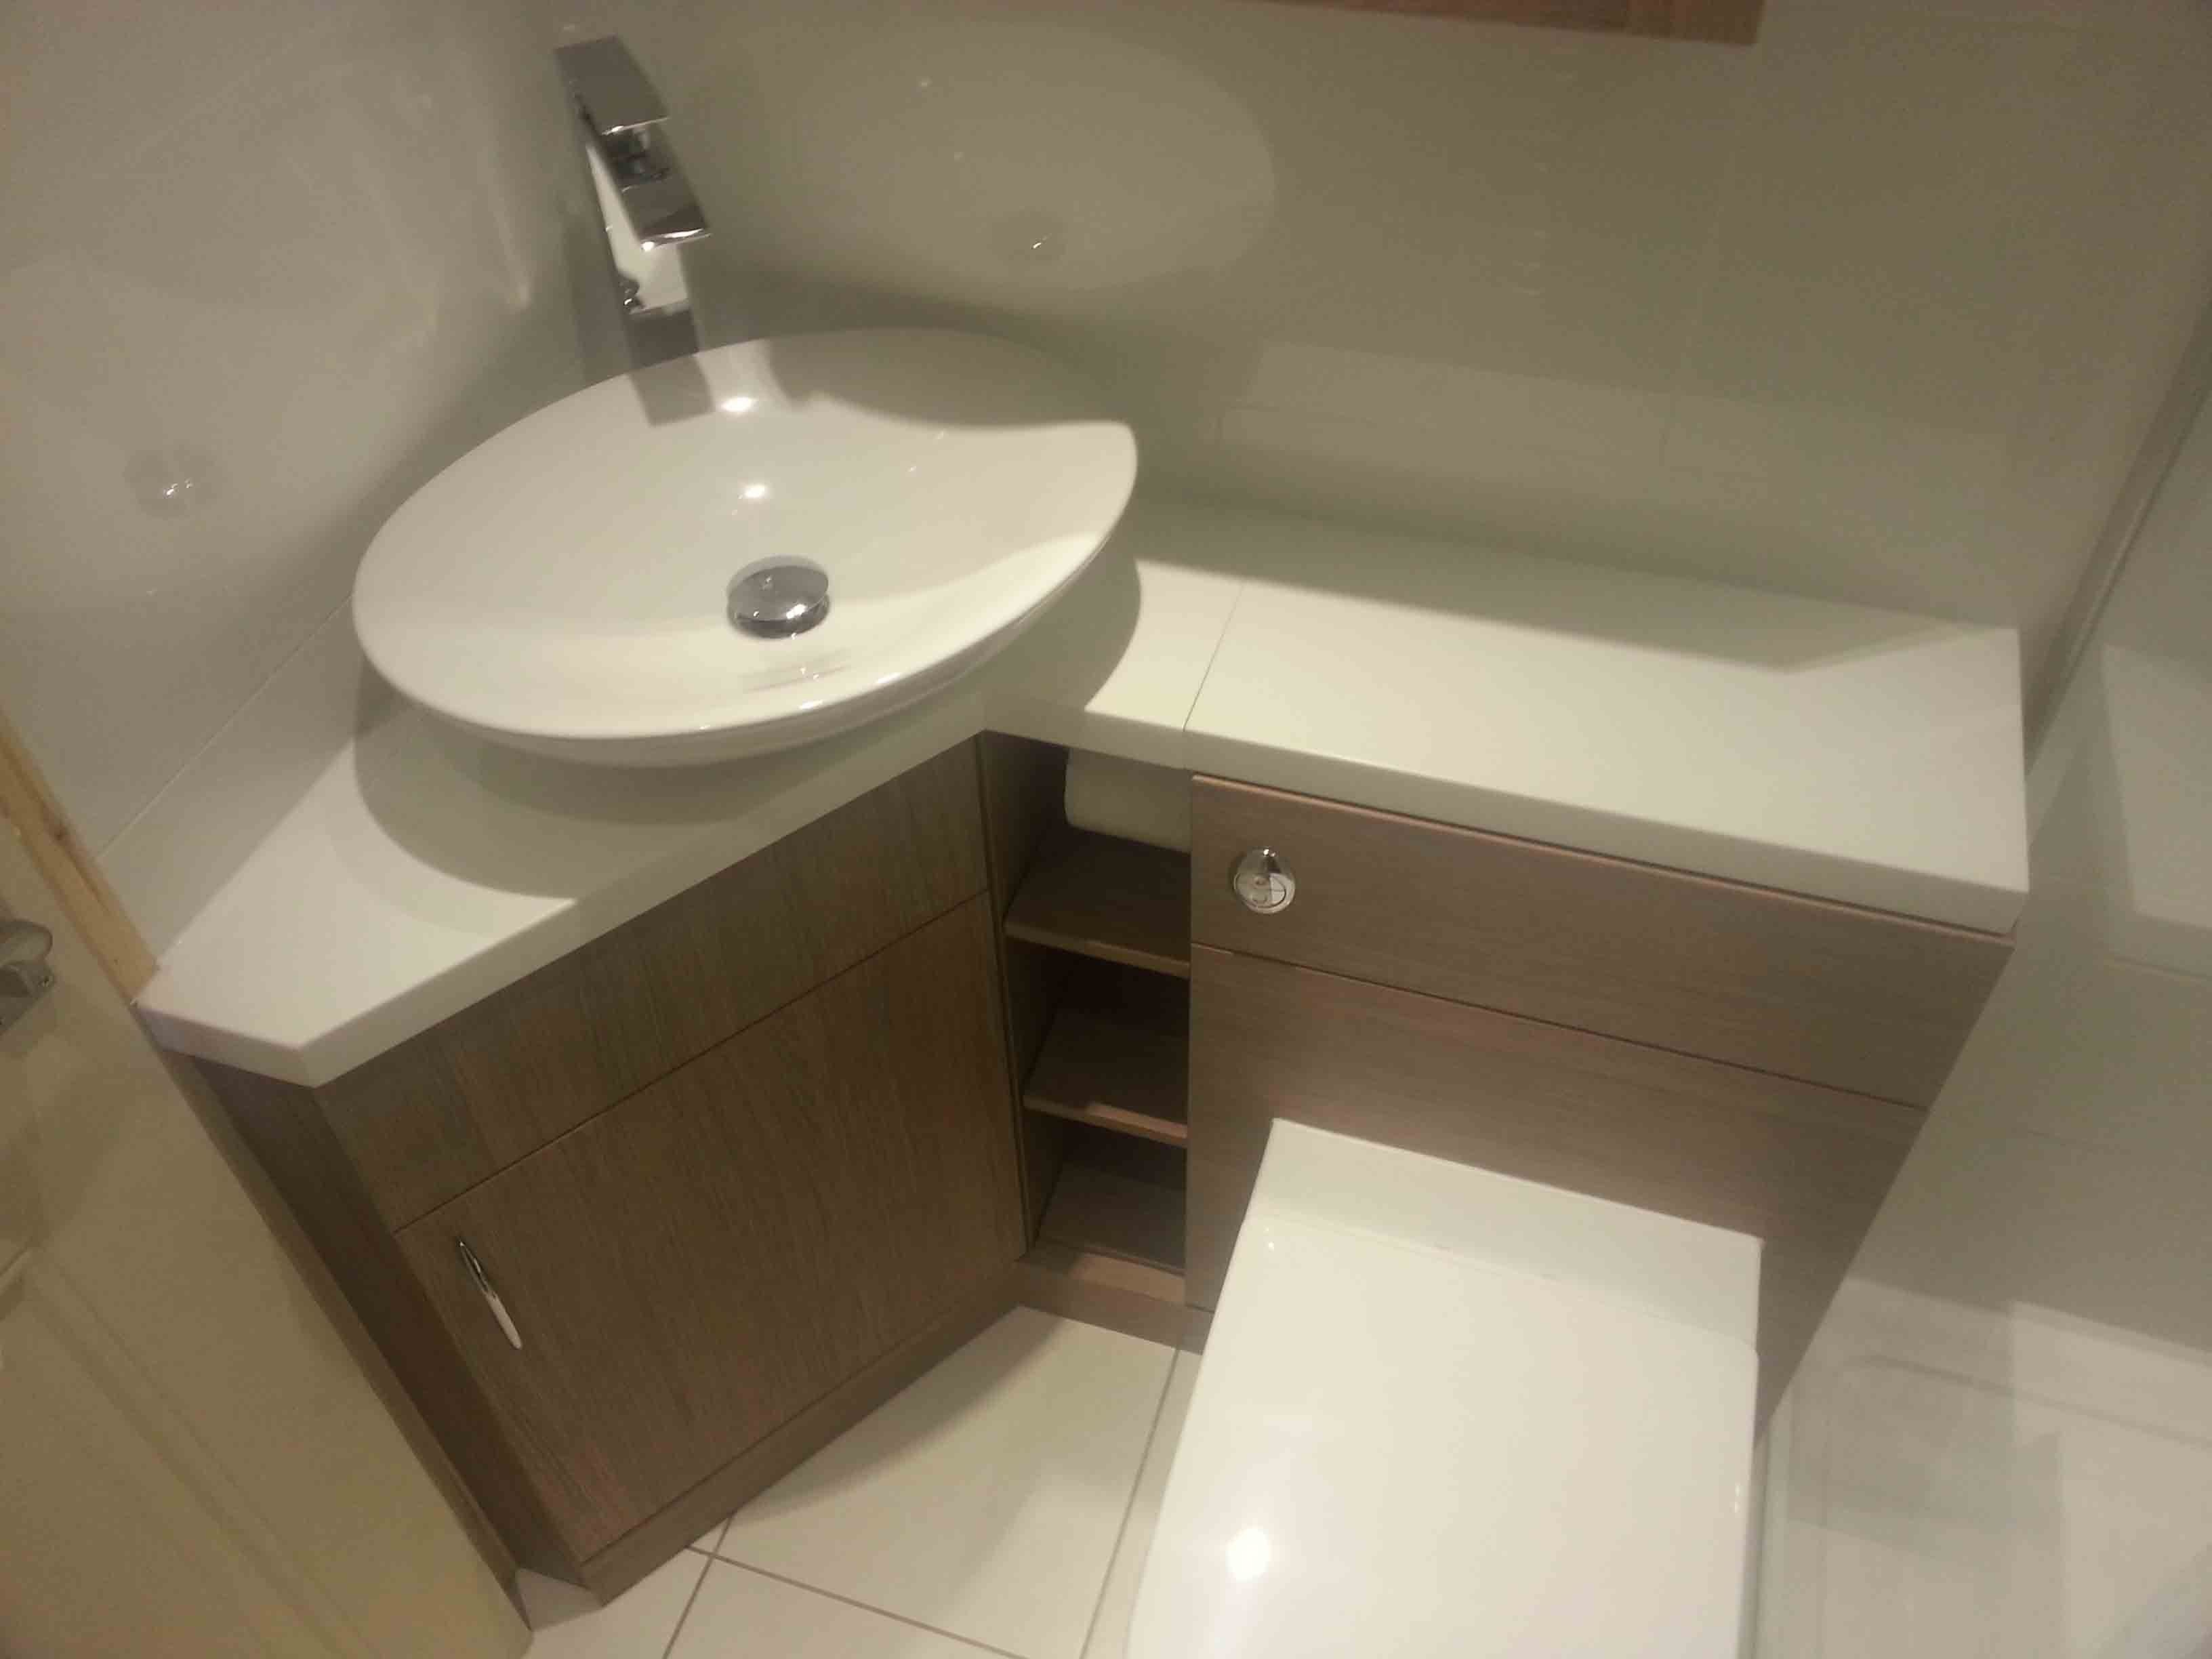 Corner Bathroom Vanity For Minimalist Houses Or Luxury Diseno De Banos Banos Pequenos Muebles De Bano